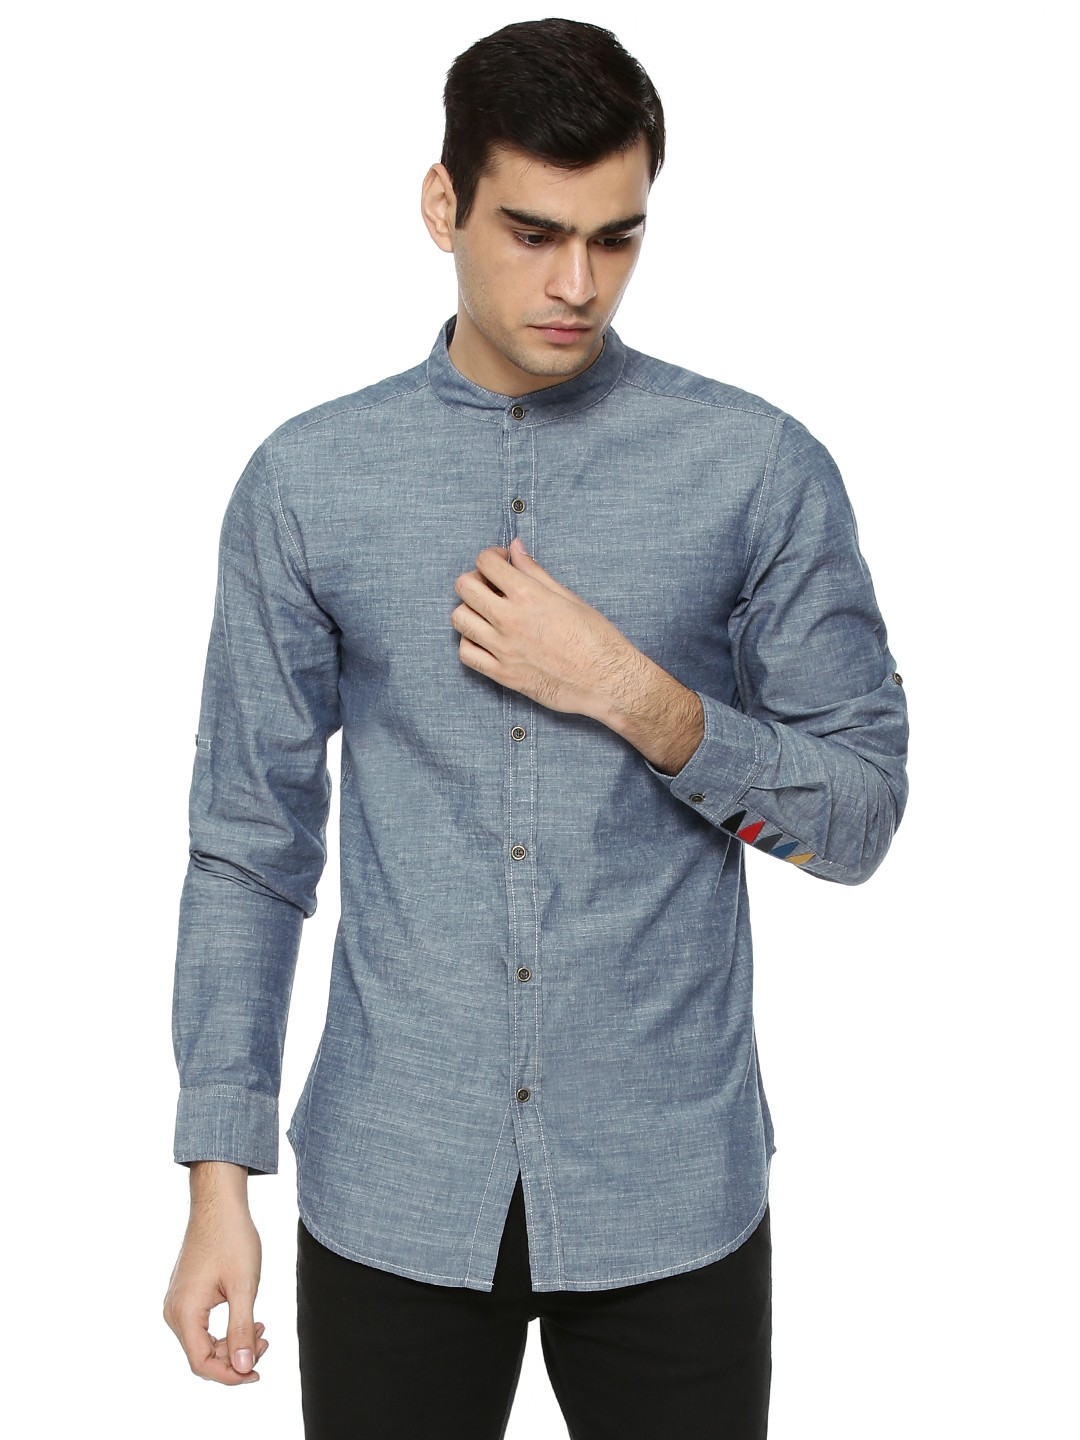 Mens Long Sleeved Mandarin Collar Bar Shirt/Mens Shirts. from $ 29 out of 5 stars 3. utcoco. Men's Retro Chinese Style Short Sleeve Linen Henley Shirts. from $ 25 80 Prime. 4 out of 5 stars Daniel Ellissa. Mens White Victorian Tall Collar Nehru French Cuff Shirt DSC $ 45 99 Prime.